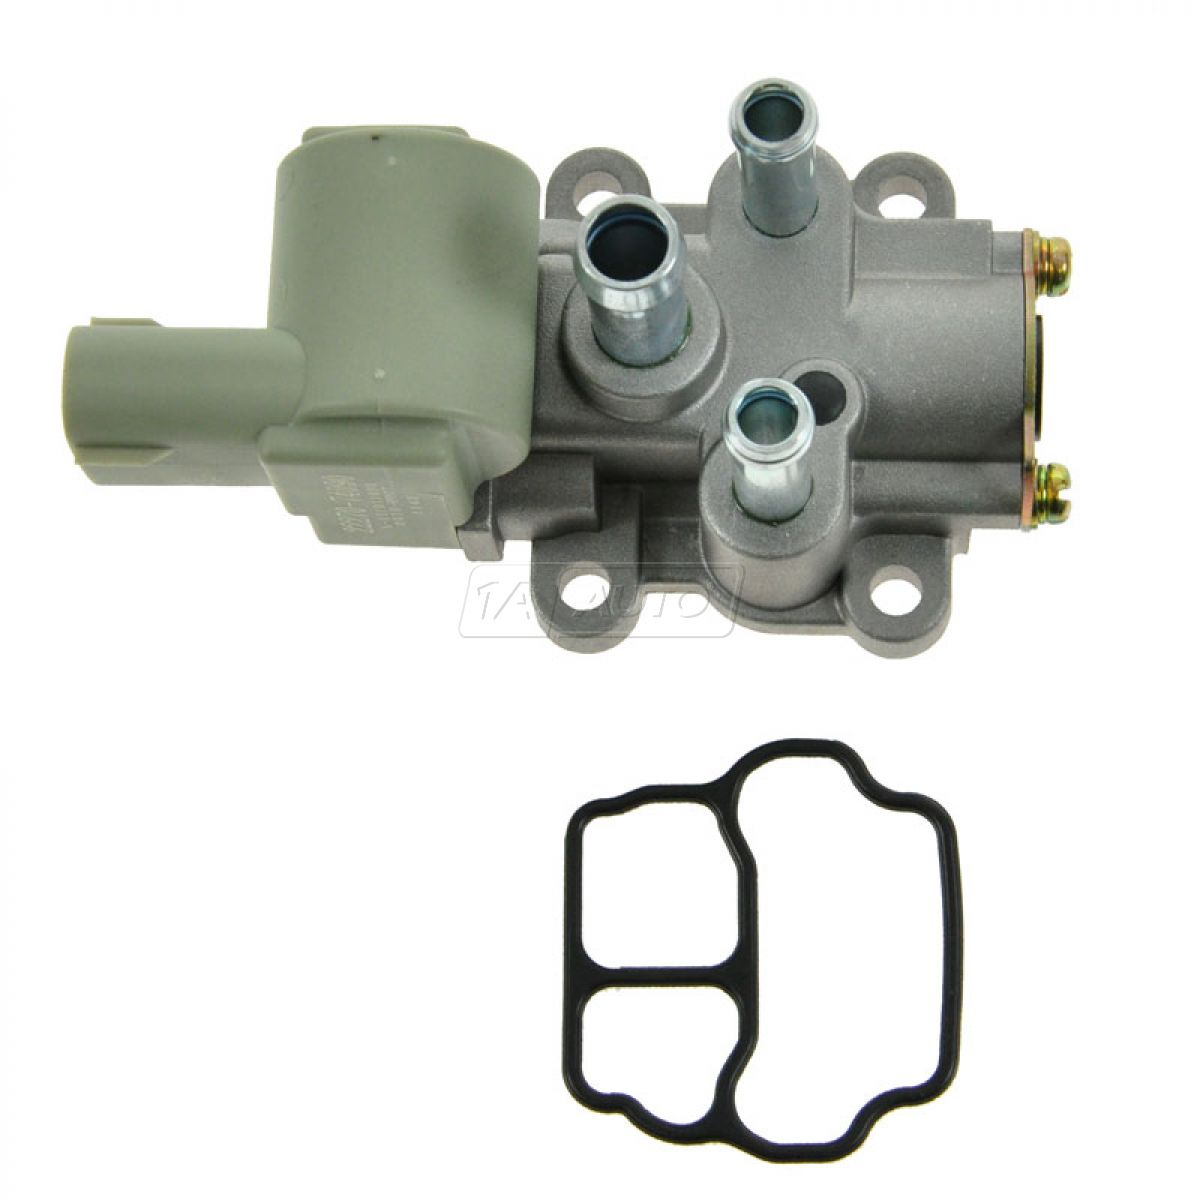 Aisc on Toyota Camry Idle Air Control Valve Location